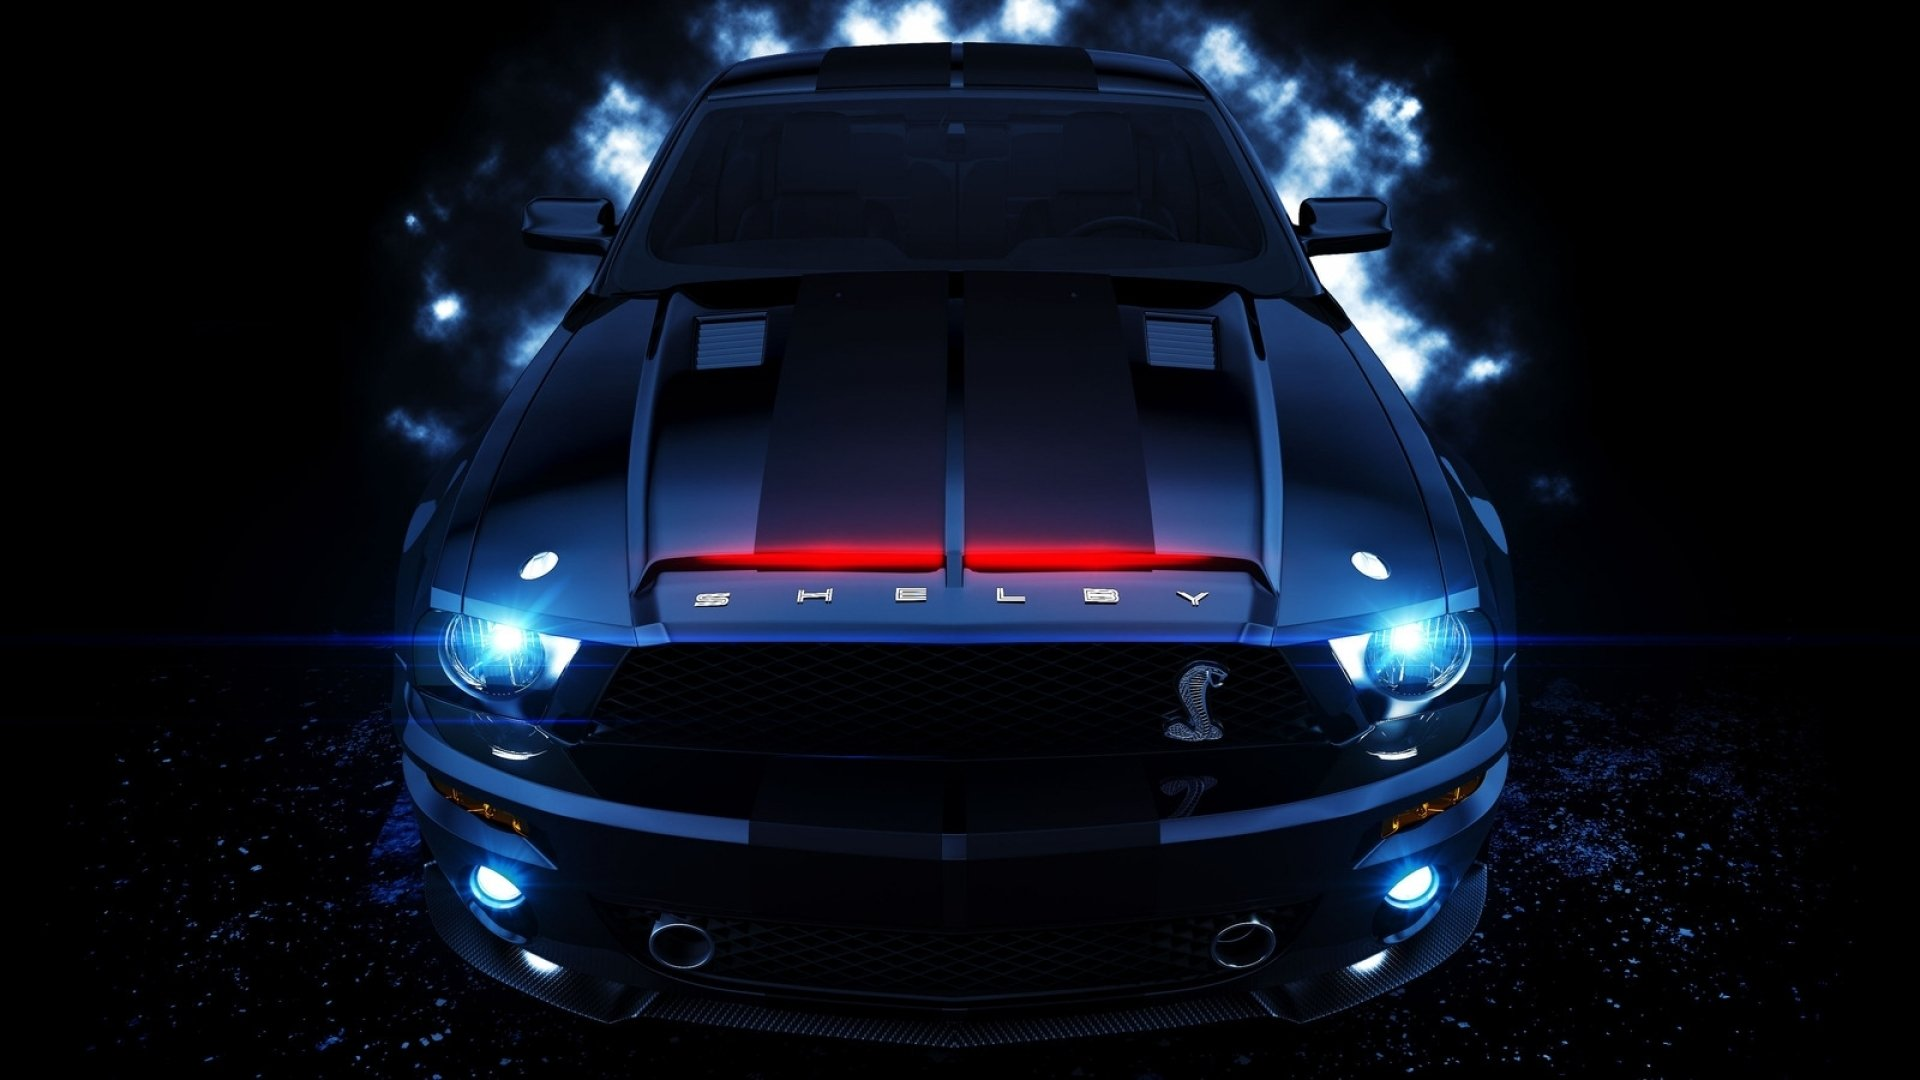 74 Ford Mustang Shelby GT500 HD Wallpapers | Backgrounds